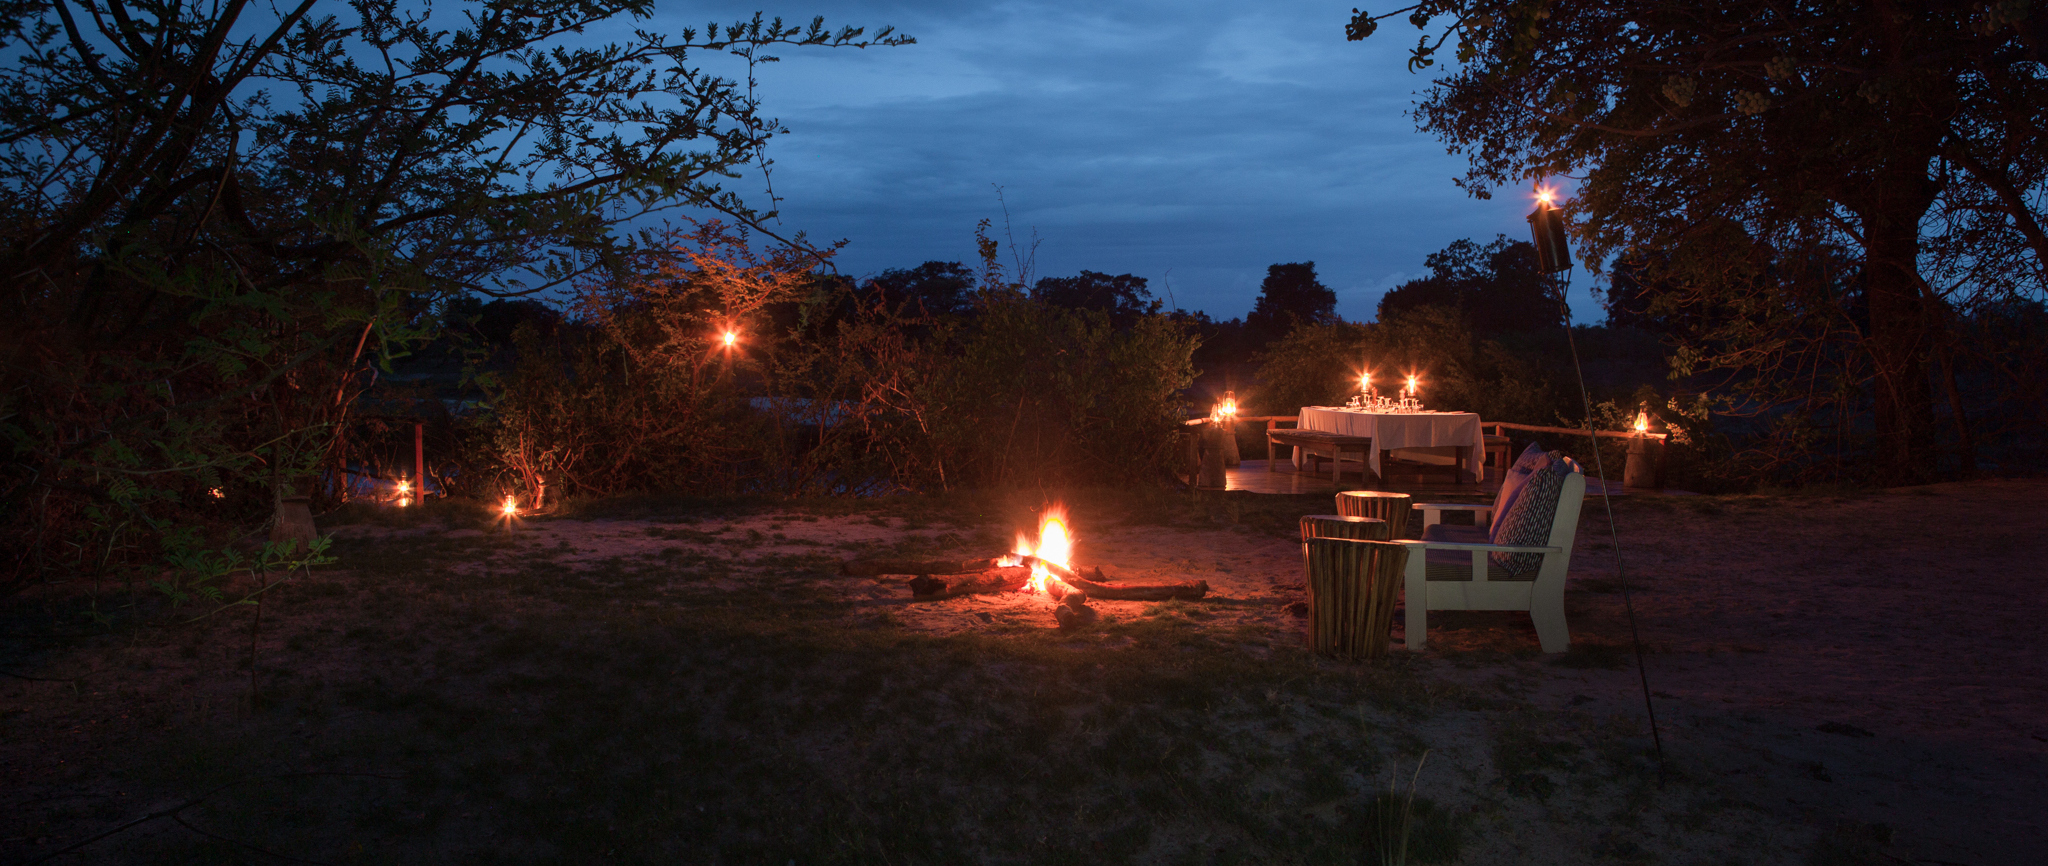 sindabezi-island-camp-fire